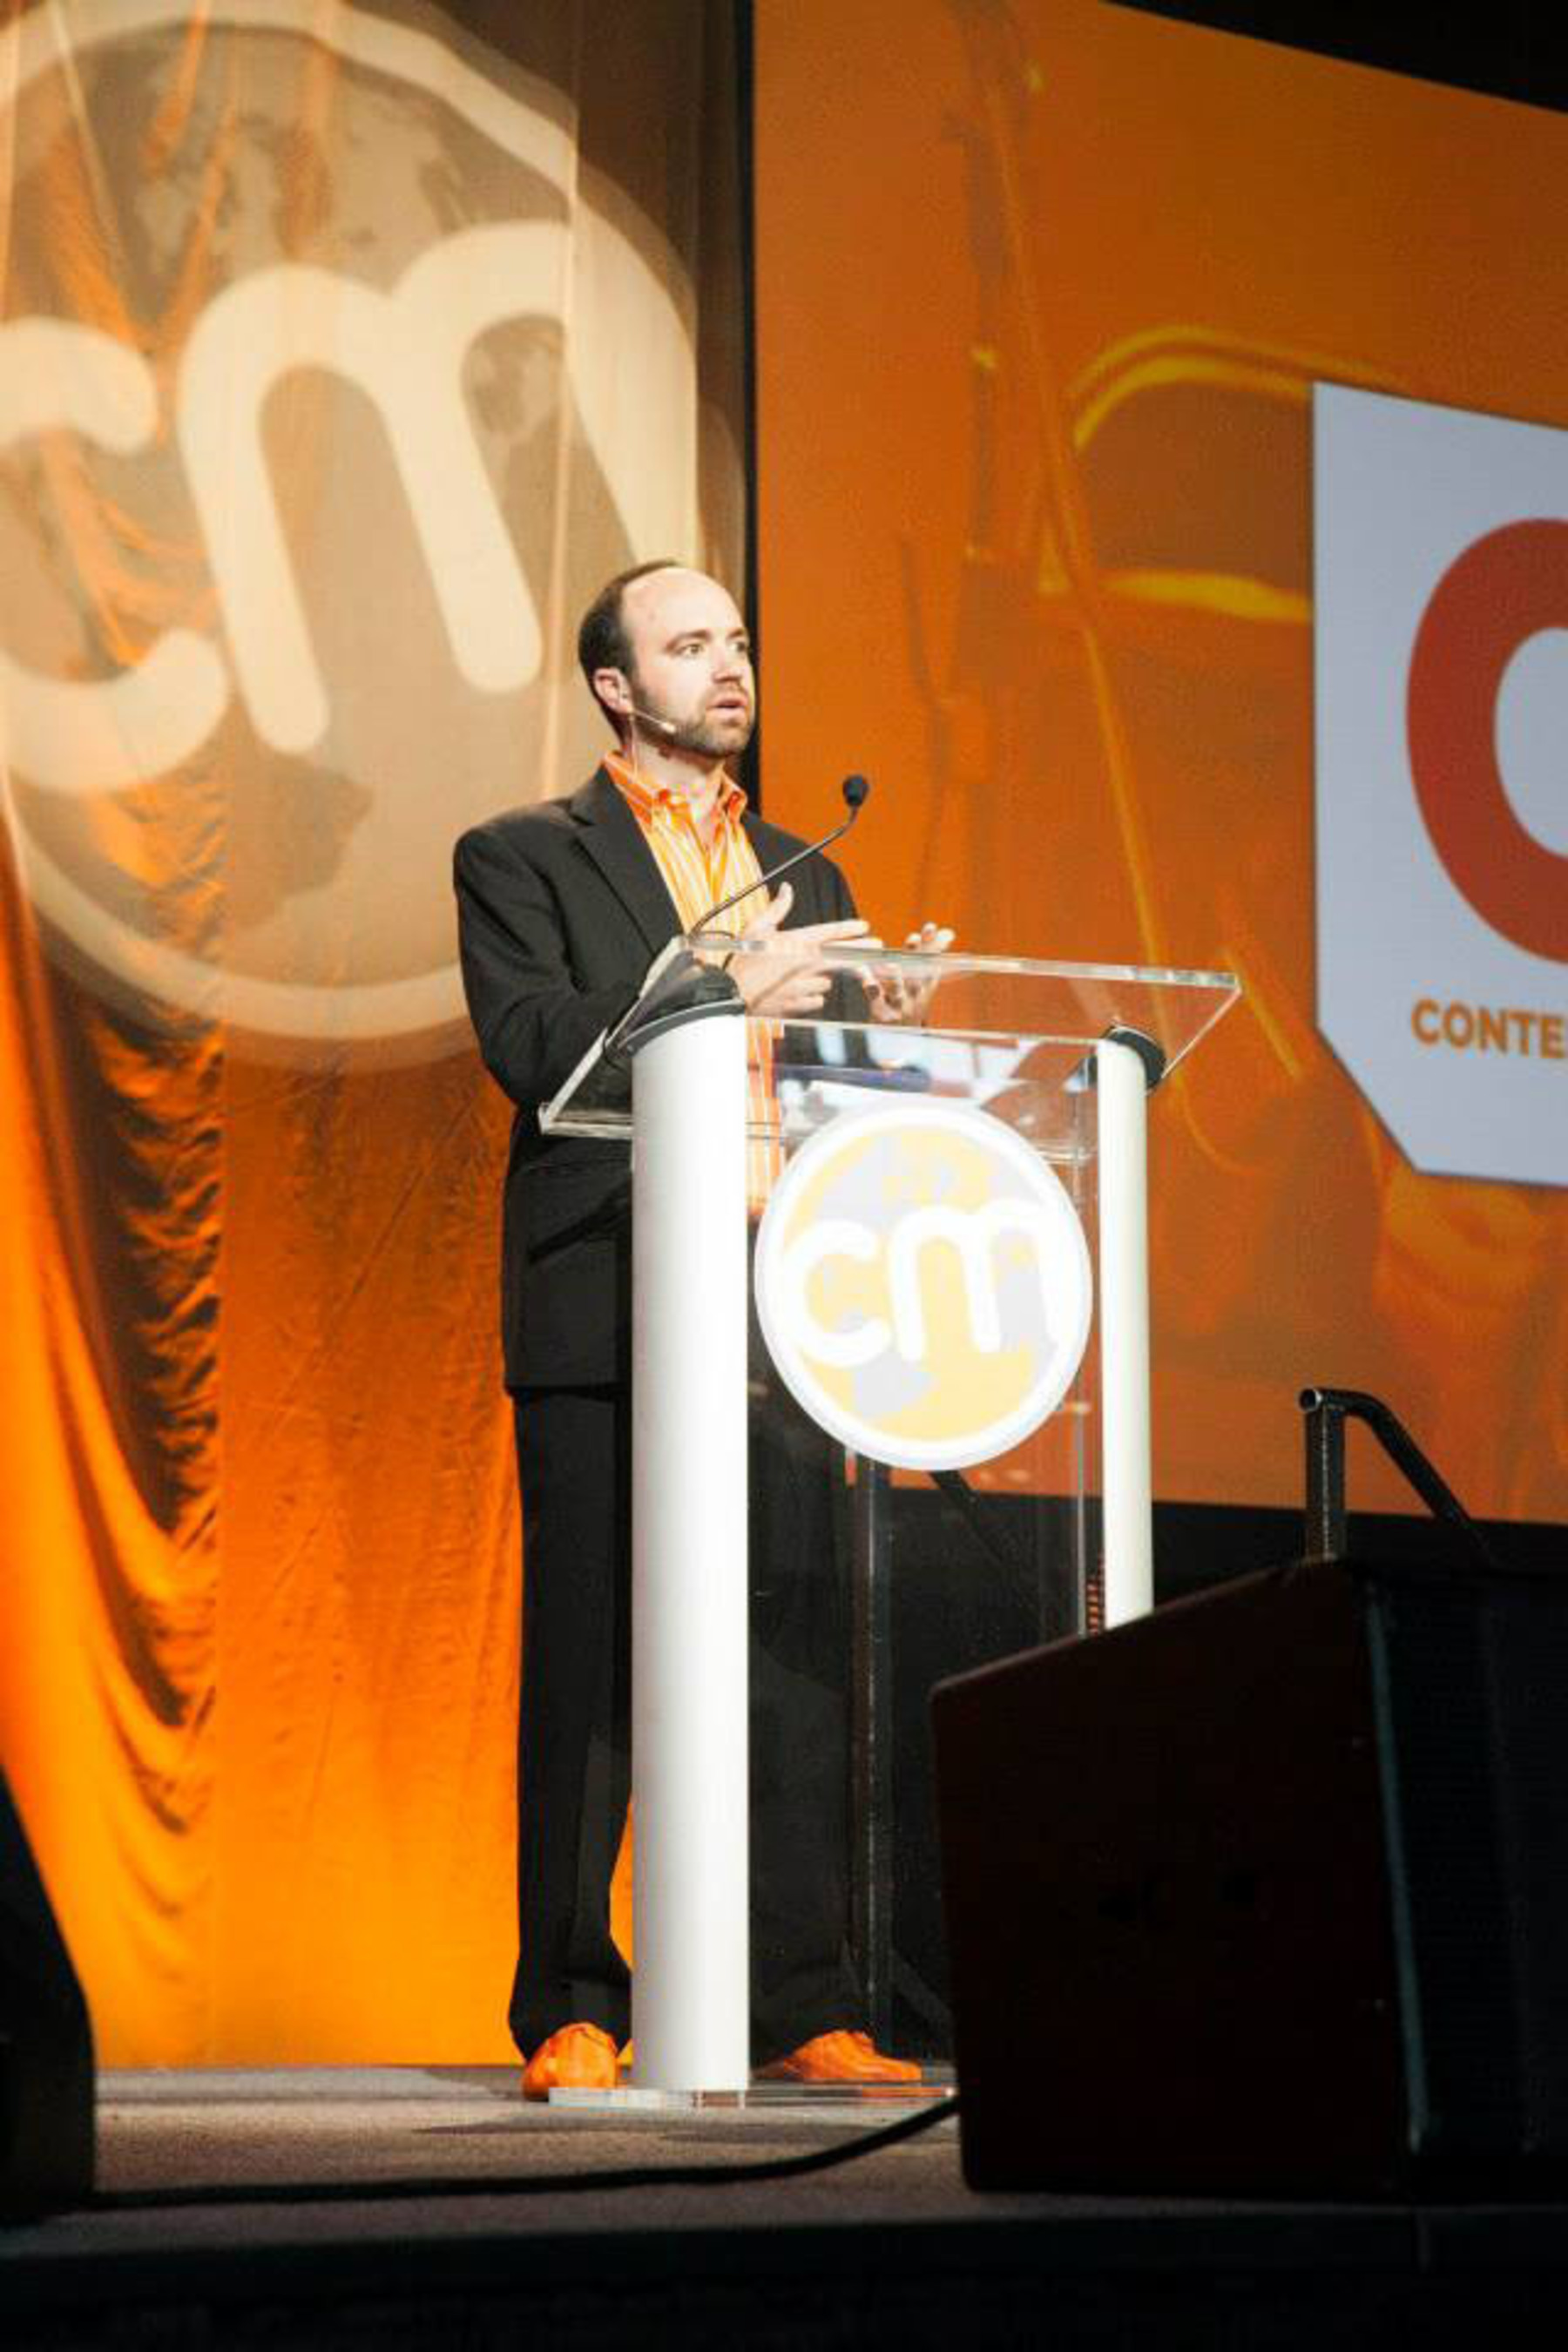 Joe Pulizzi announcing Content Marketing Awards at Content Marketing World 2013 in Cleveland, Ohio. (PRNewsFoto/Content Marketing Institute) (PRNewsFoto/CONTENT MARKETING INSTITUTE)